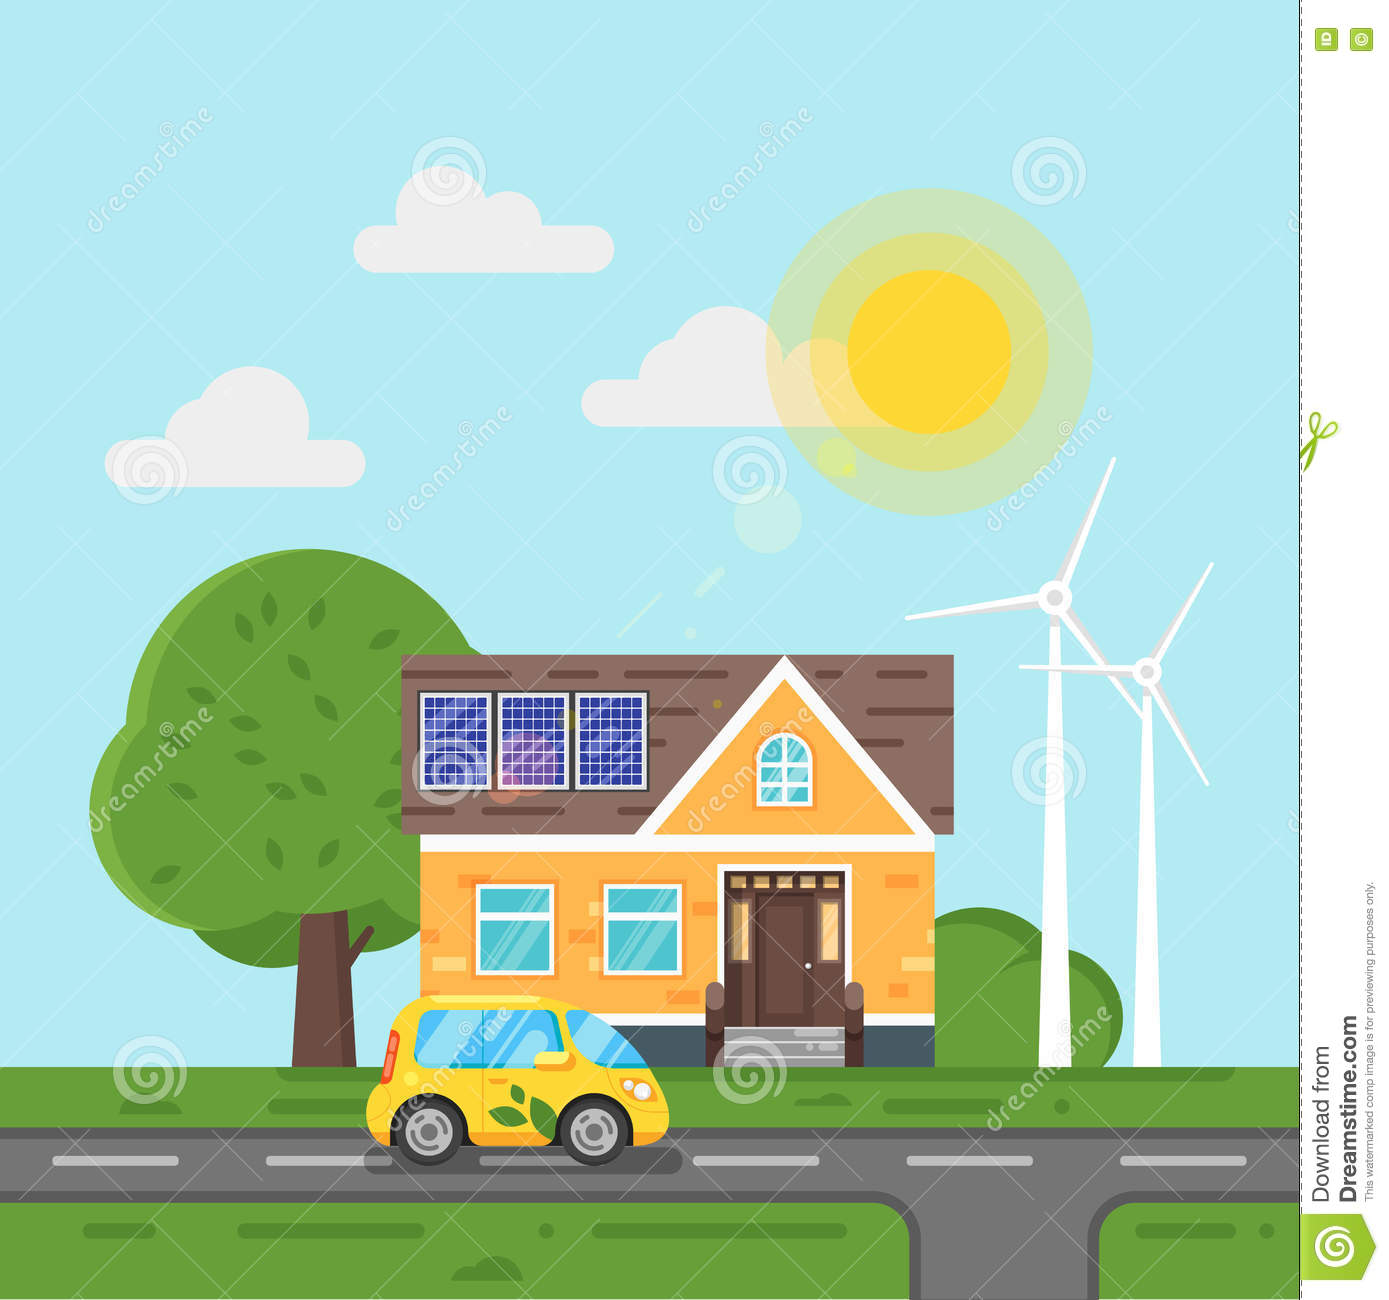 Vector Flat Style Illustration Of Electric Car And House With